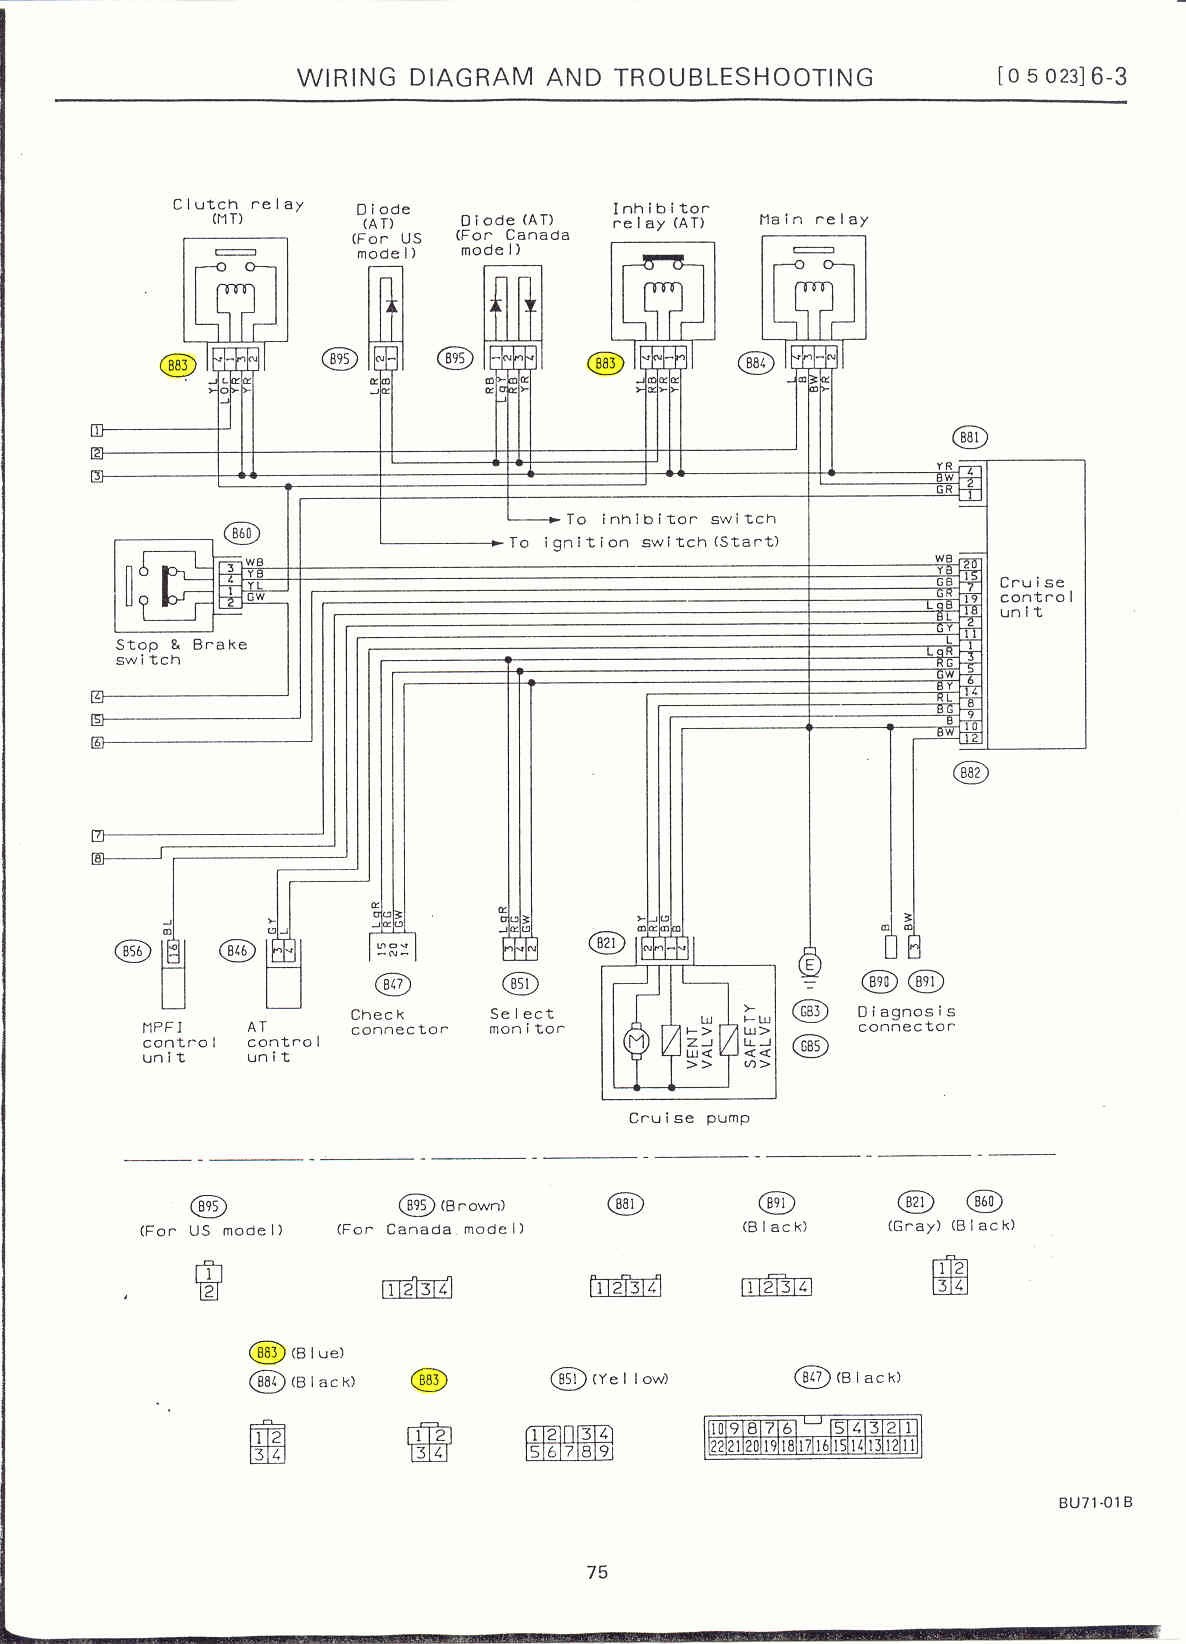 1997 Subaru Wiring Diagram